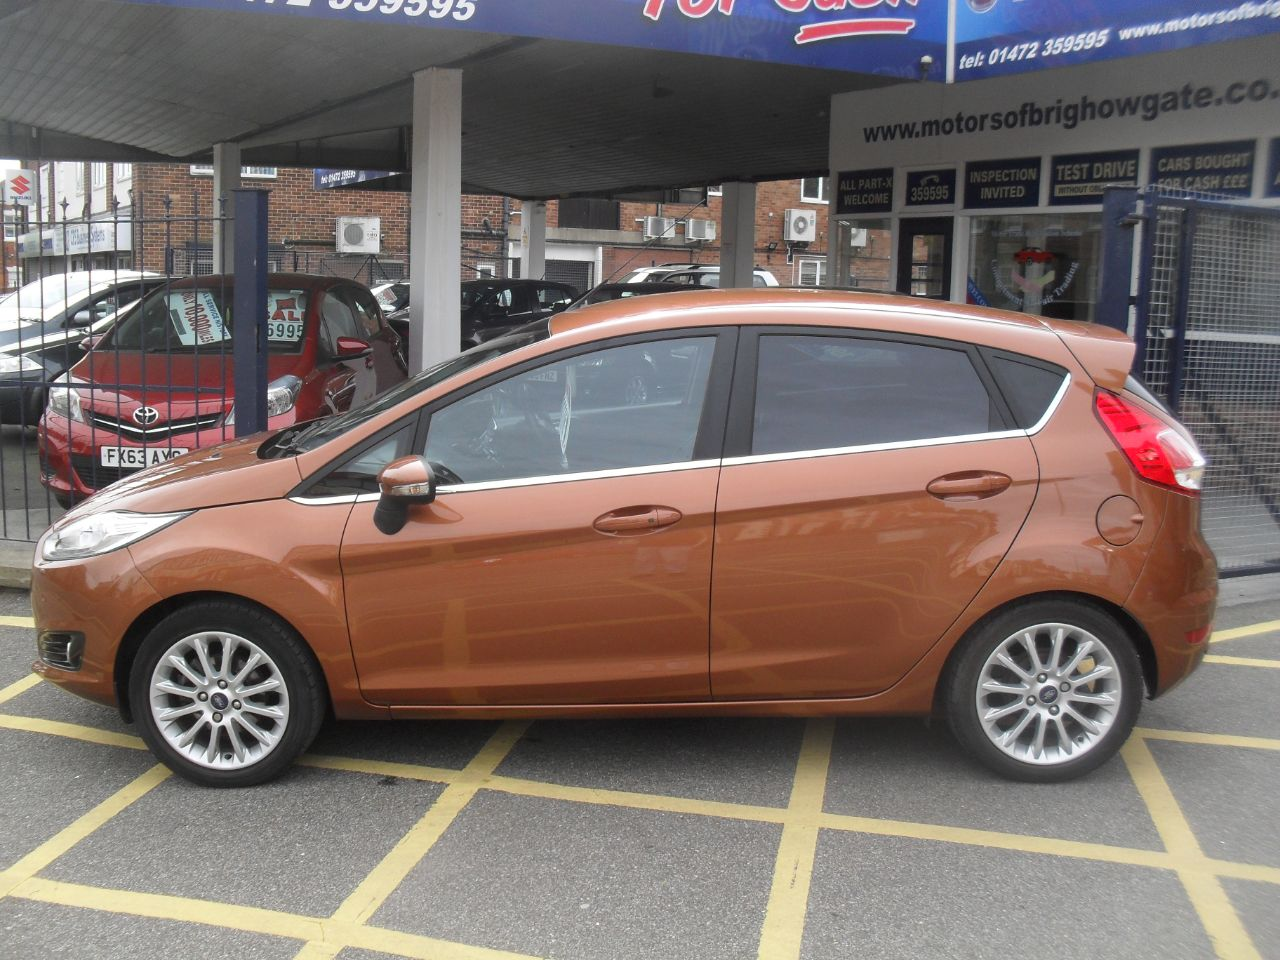 Ford Fiesta 1.0 EcoBoost 125 Titanium X 5dr Hatchback Petrol Met Copper at Motors of Brighowgate Grimsby